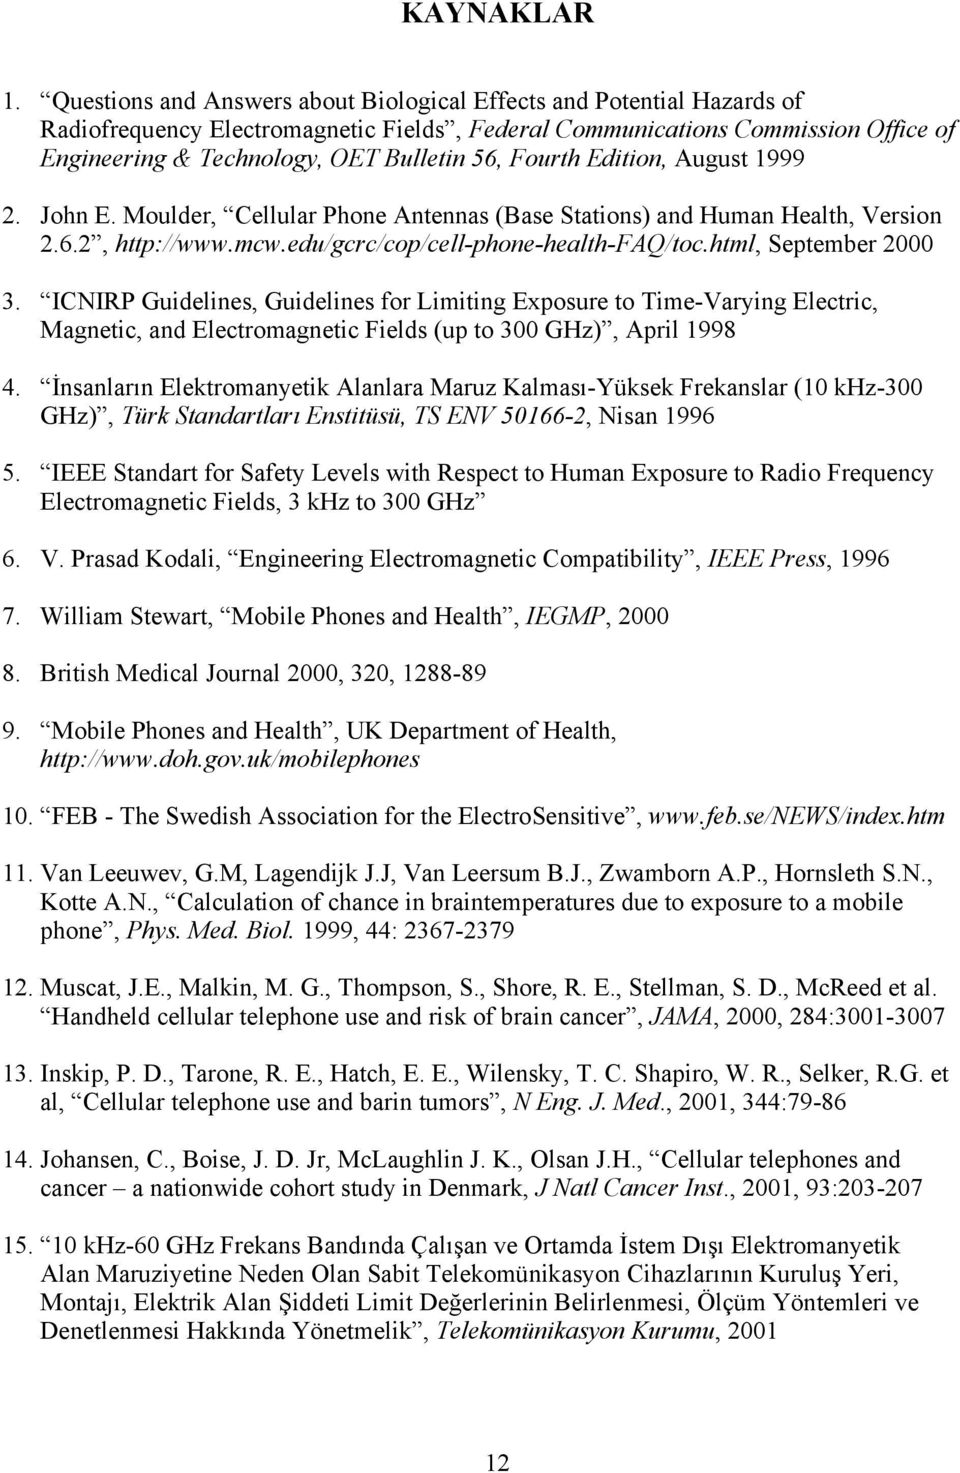 Fourth Edition, August 1999 2. John E. Moulder, Cellular Phone Antennas (Base Stations) and Human Health, Version 2.6.2, http://www.mcw.edu/gcrc/cop/cell-phone-health-faq/toc.html, September 2000 3.